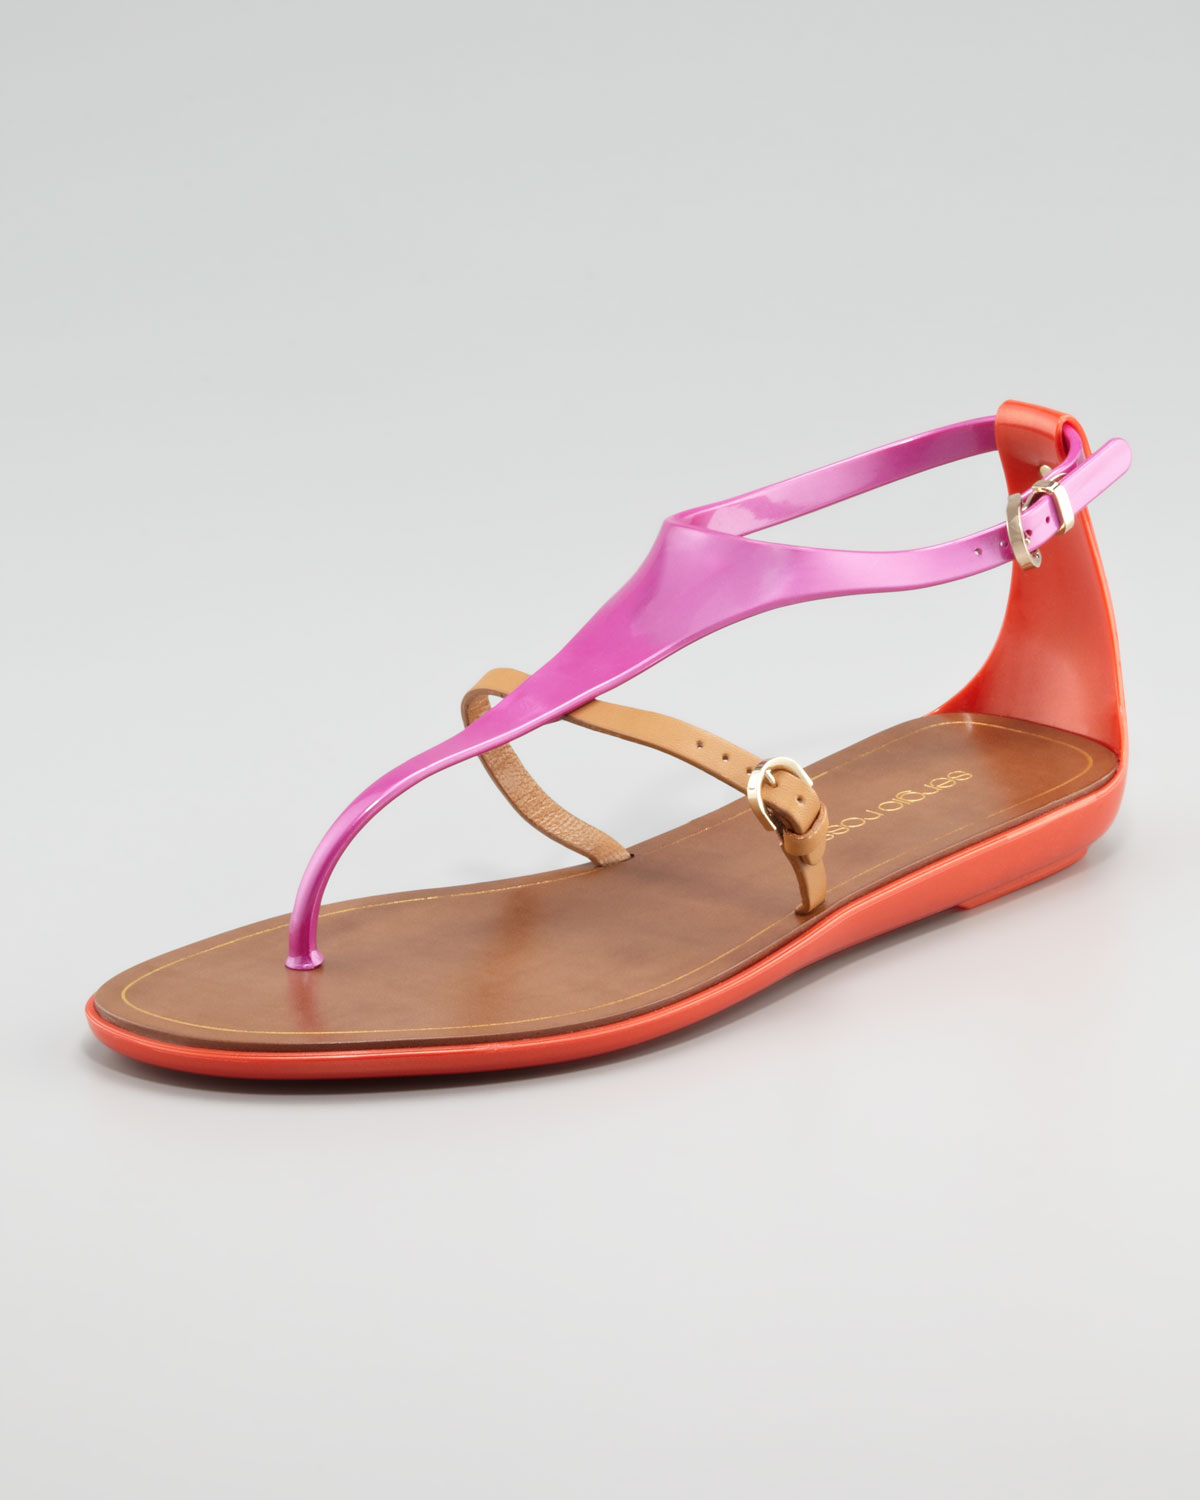 low shipping for sale best prices cheap online Sergio Rossi Rubber Thong Sandals CxEjiA6